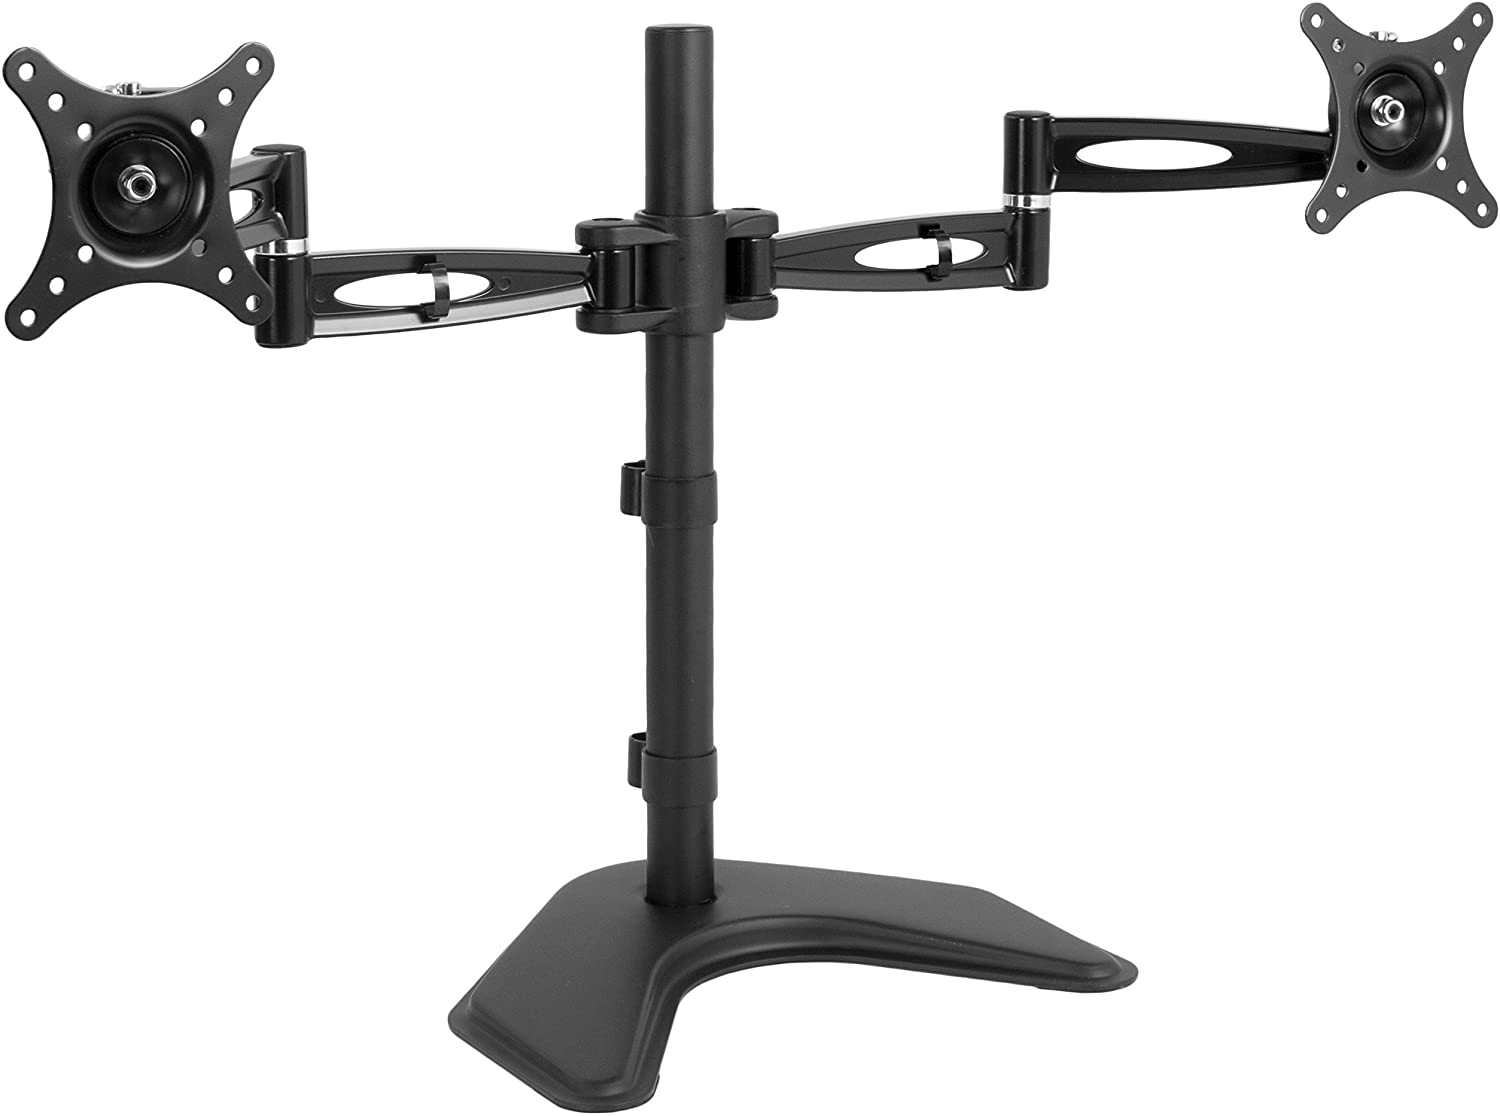 VIVO Dual LCD Monitor Free Standing Desk Mount, Heavy Duty Fully Adjustable Stand fits 2 Screens up to 27 inches (STAND-V002Z)